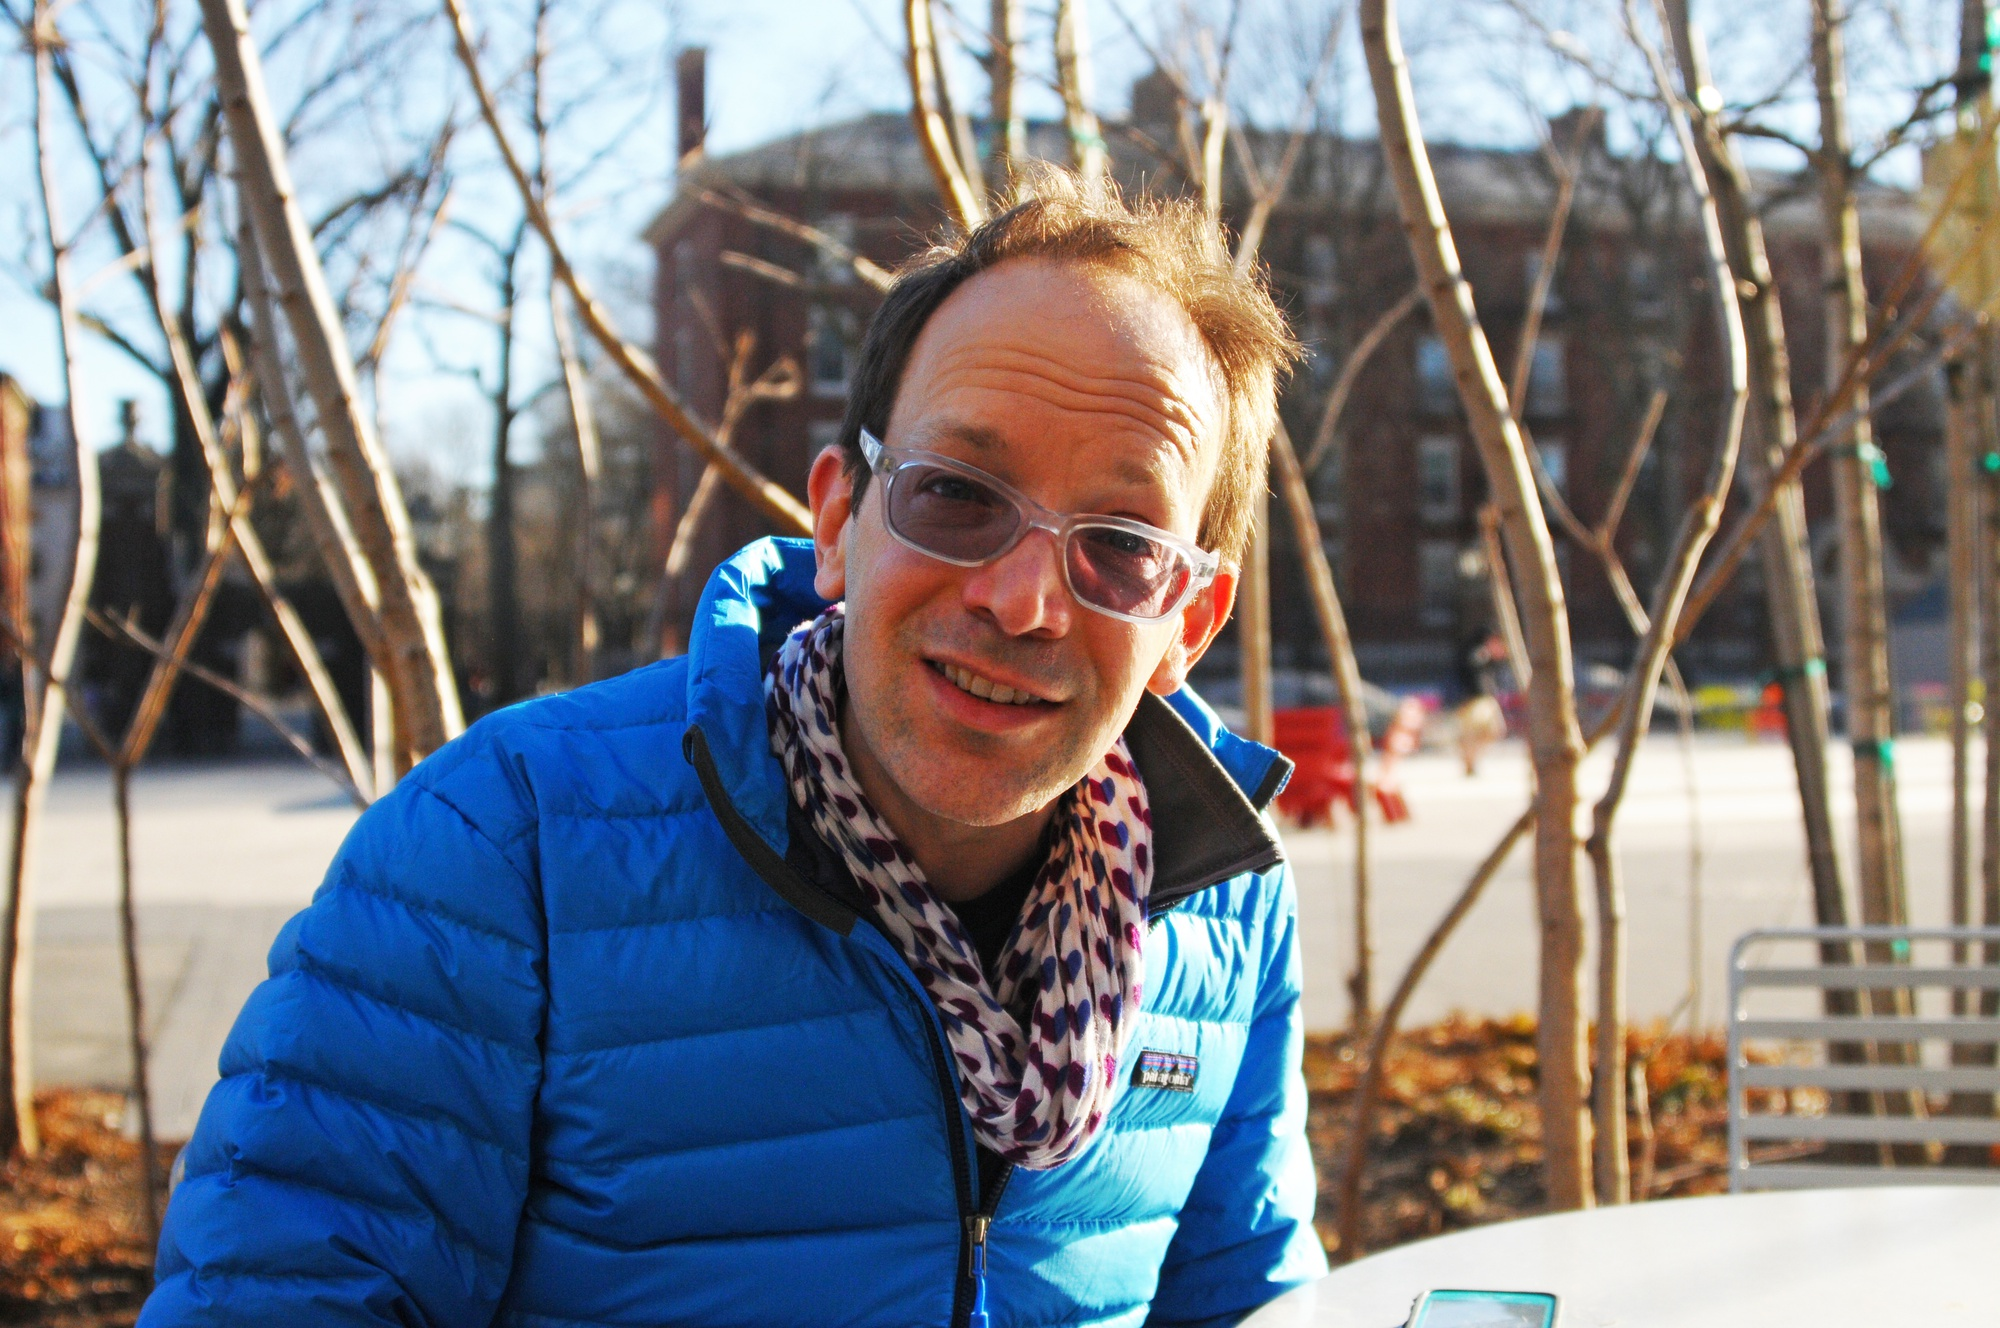 English professor Stephen L. Burt '93 shares his thoughts on the use of Wikipedia in the classroom. Burt said that Wikipedia might be a good starting point for background research.